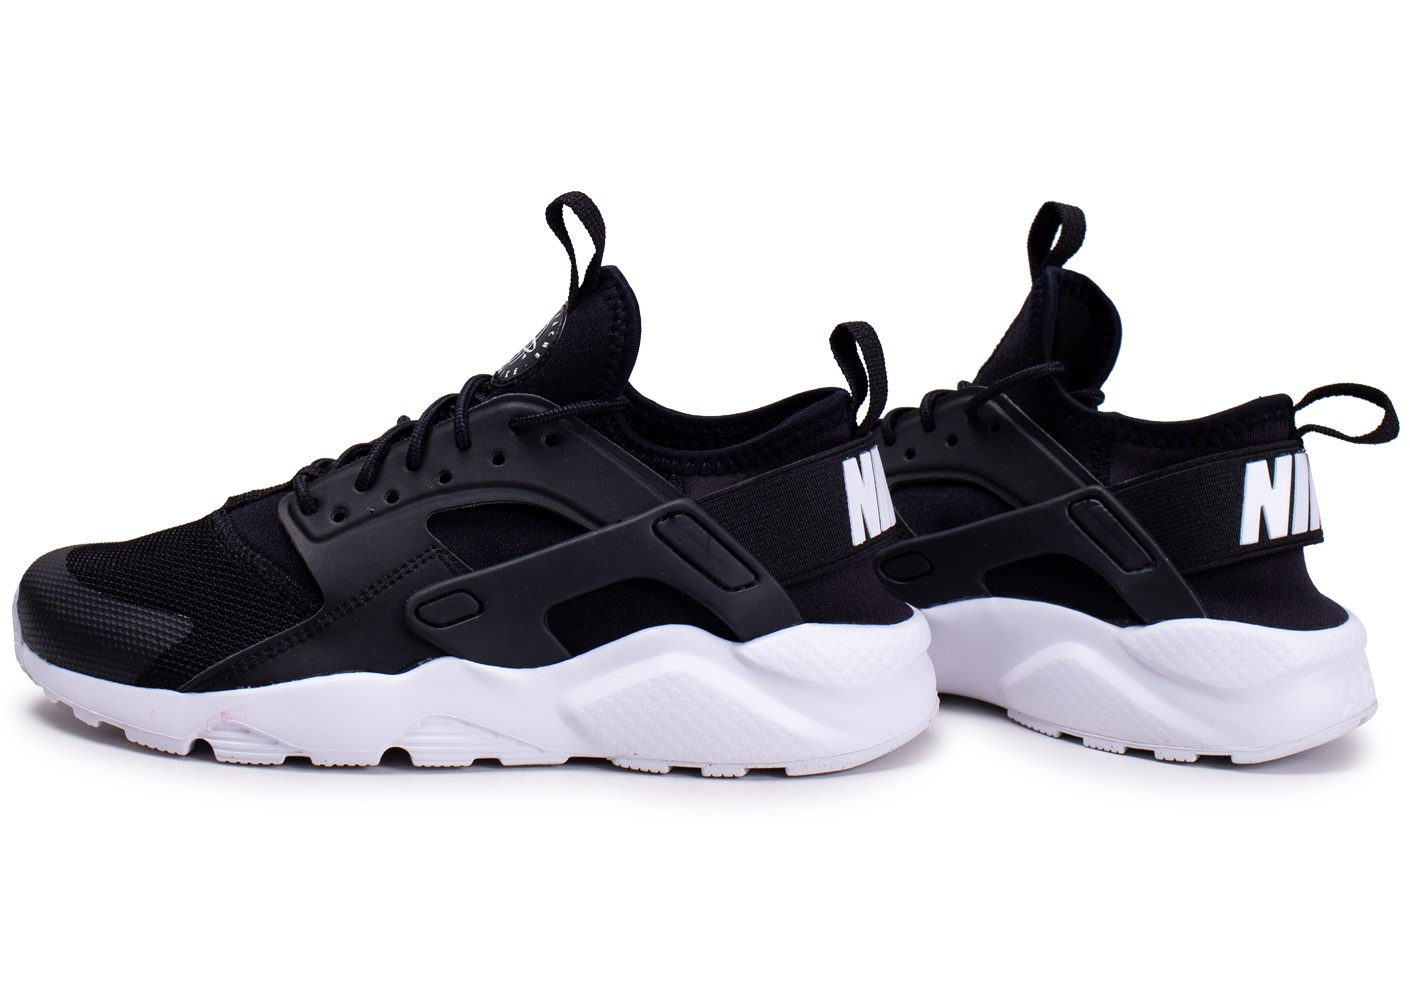 Nike Air Huarache Run Ultra noire et blanche junior ...